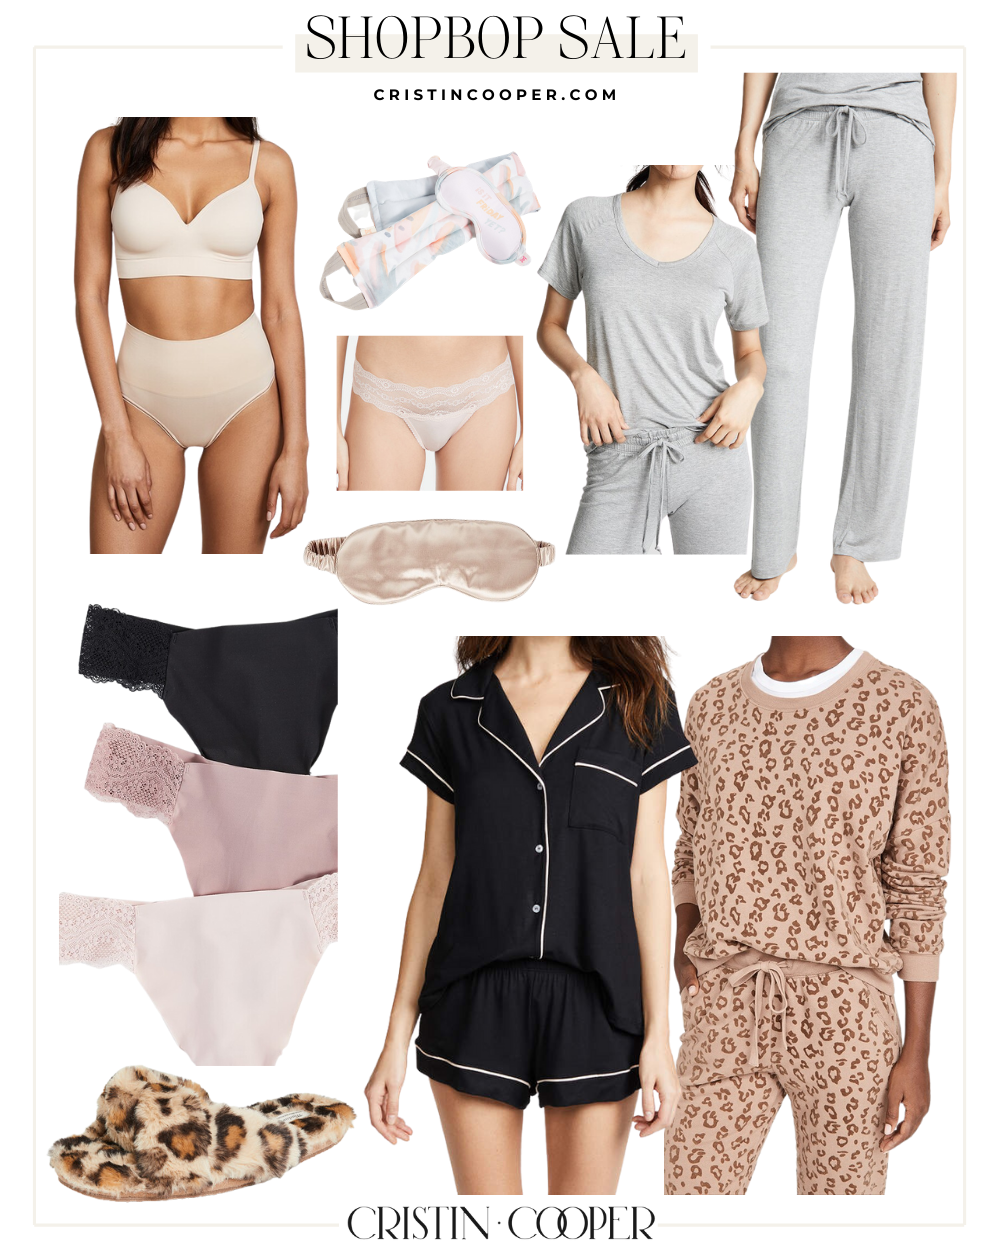 Pajamas and intimates from the Shopbop Sale.